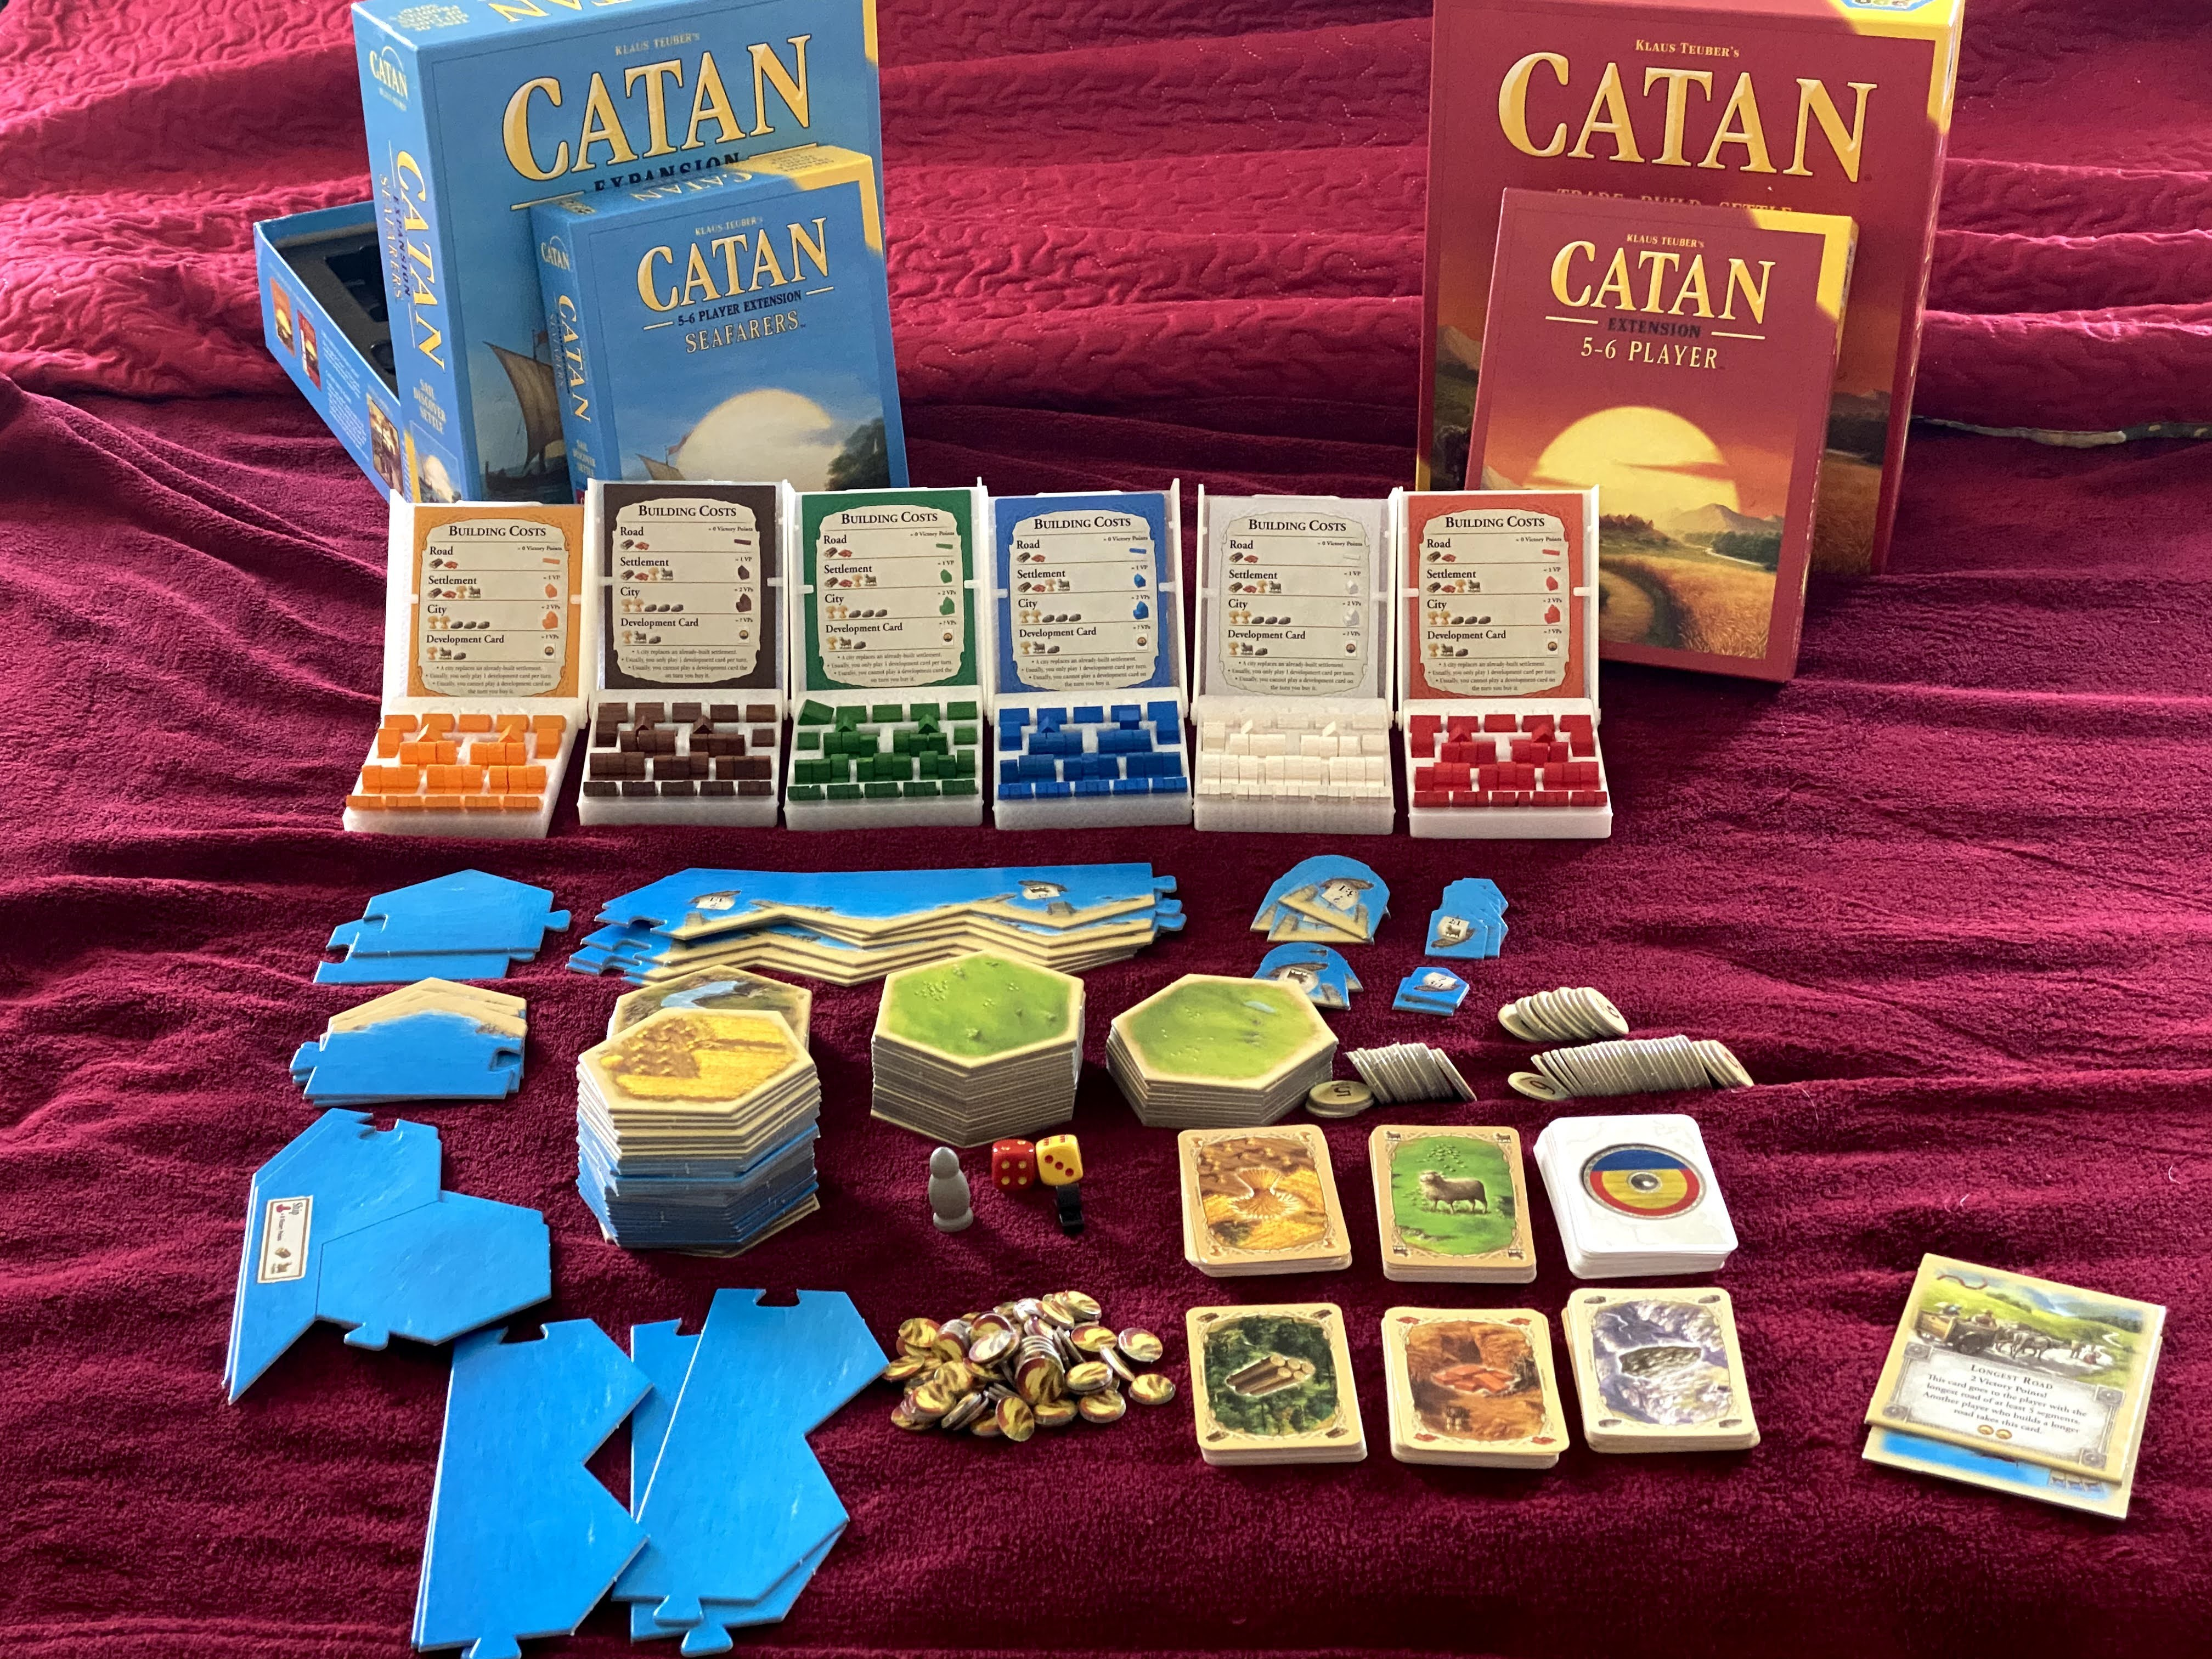 IMG_9622.jpg Download STL file Catan Organizer Insert for the Base Game, Seafarers, and Both 5-6 Player Extensions • 3D printer template, theneedfull